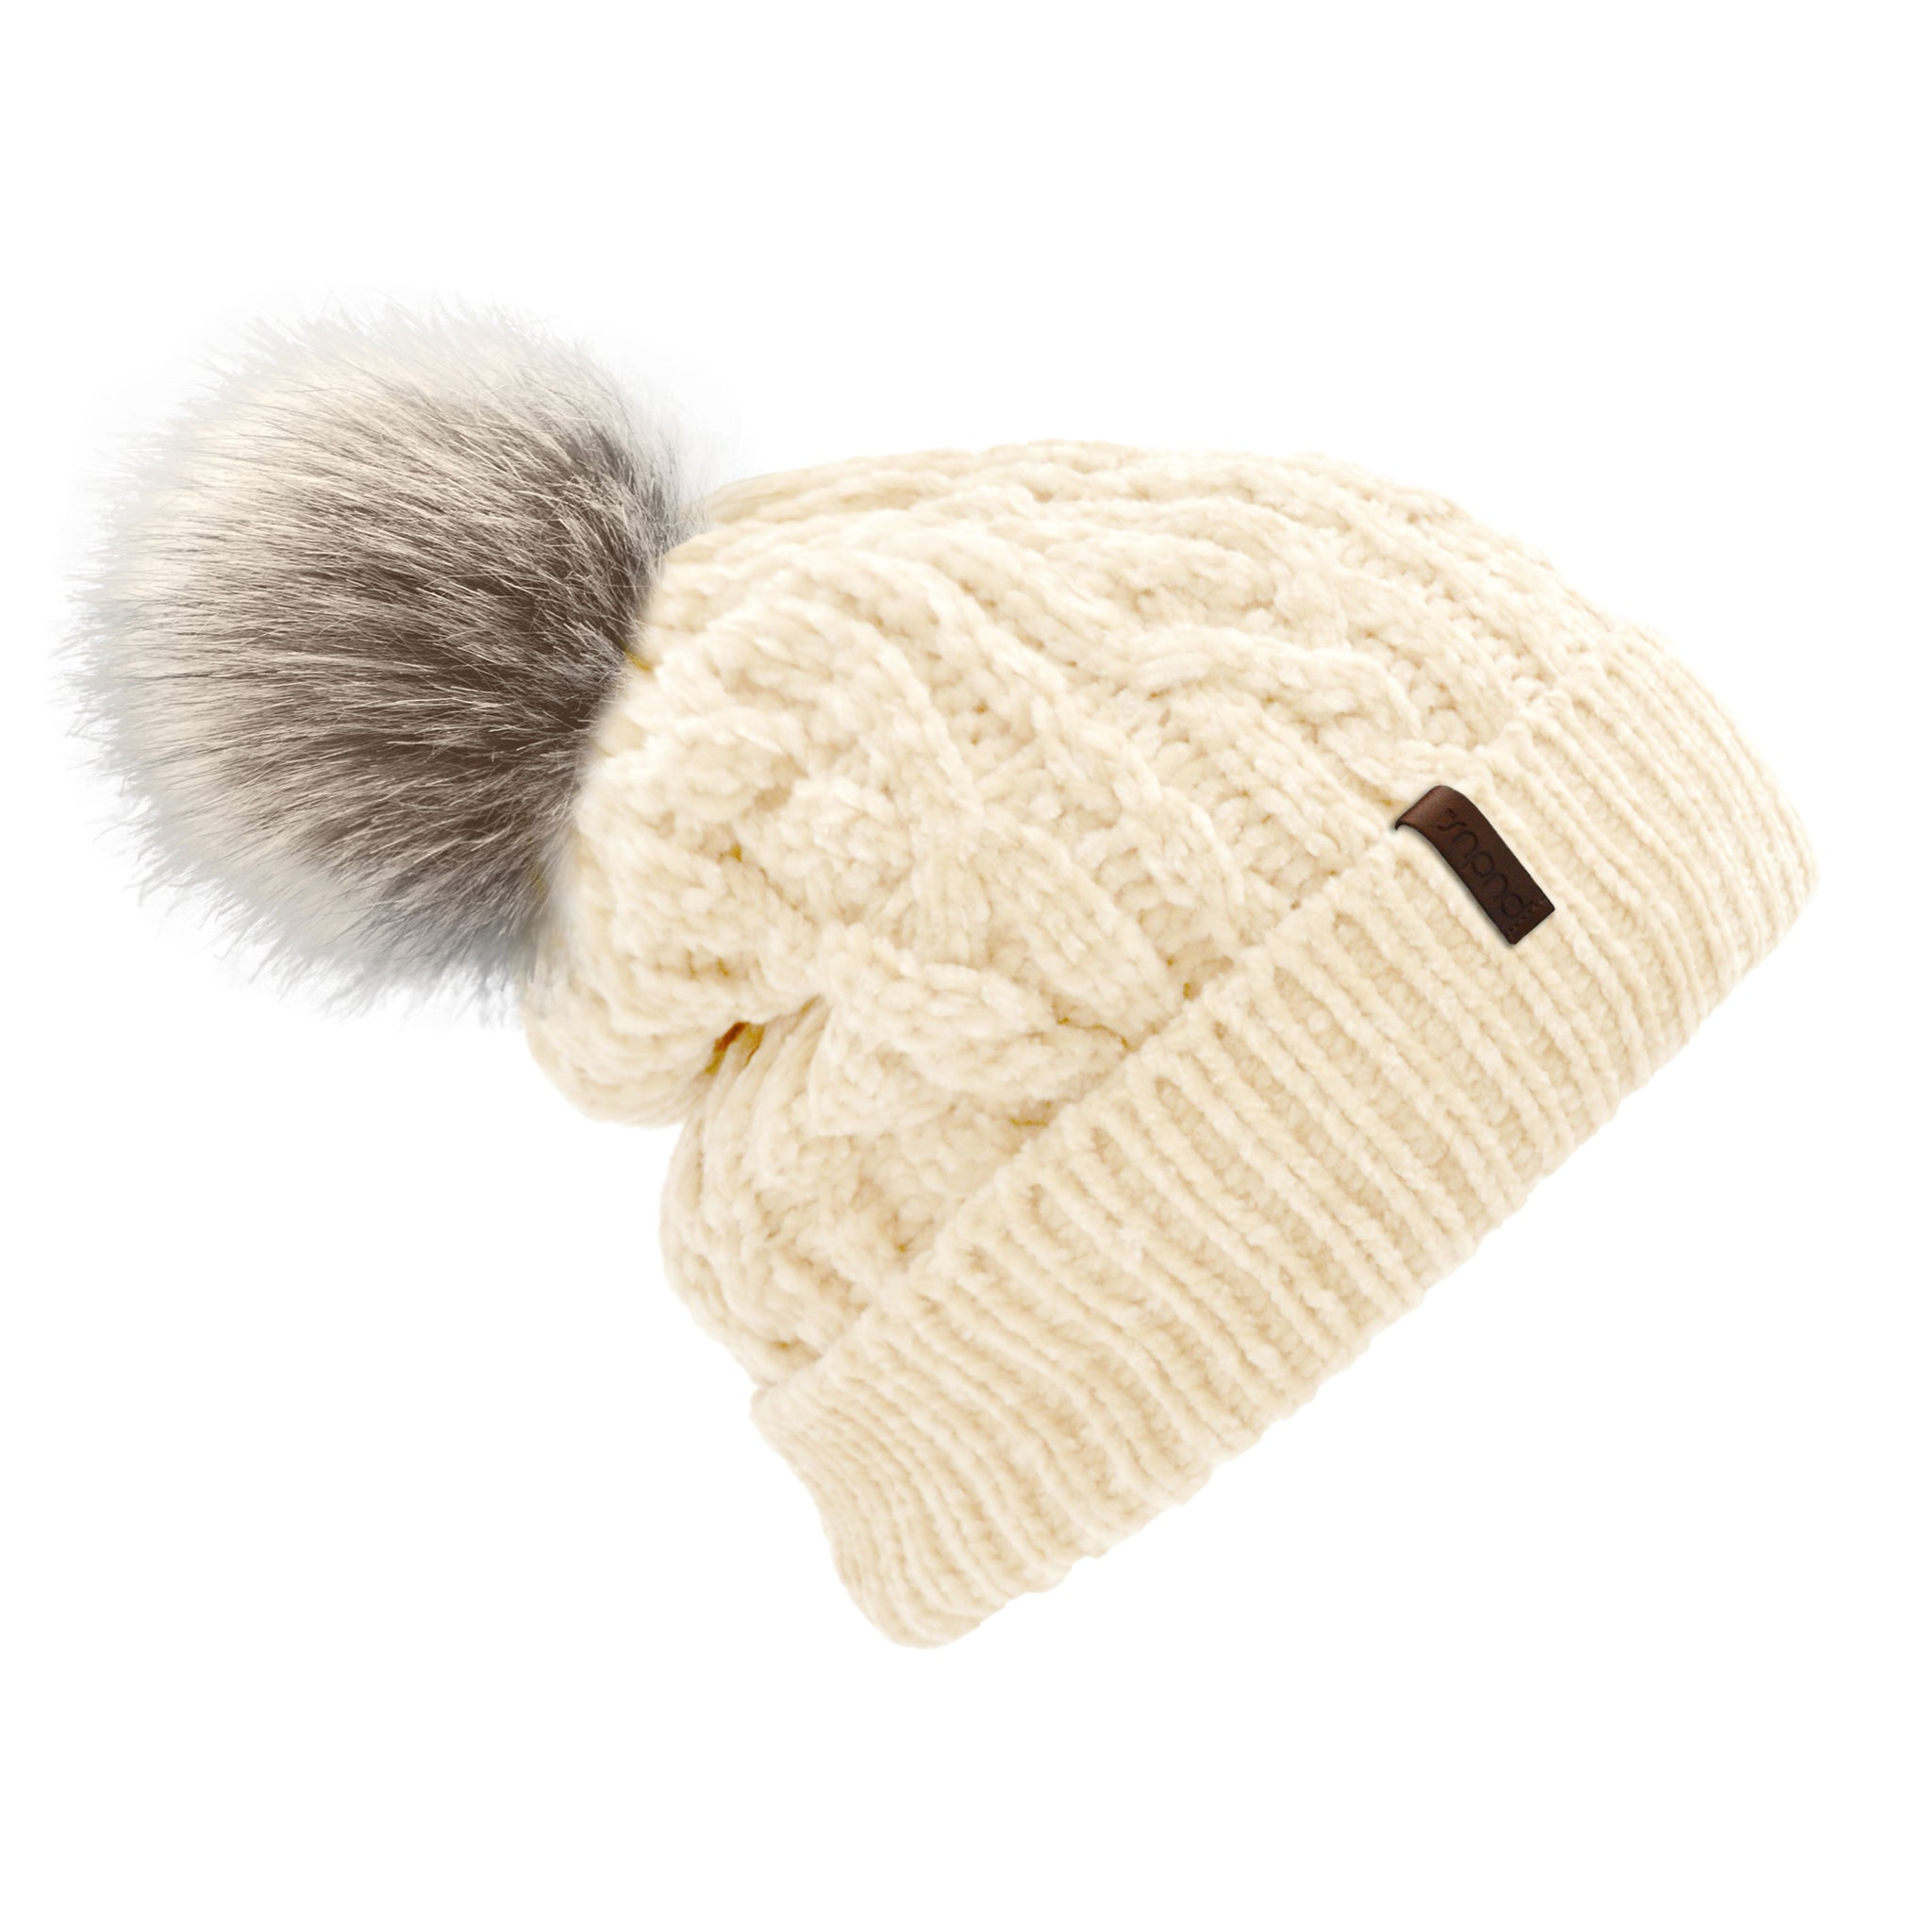 Pudus Women's Winter Beanie Hat in White with Faux Fur Pom Pom - Cable Knit Chenille and Fleece Lined